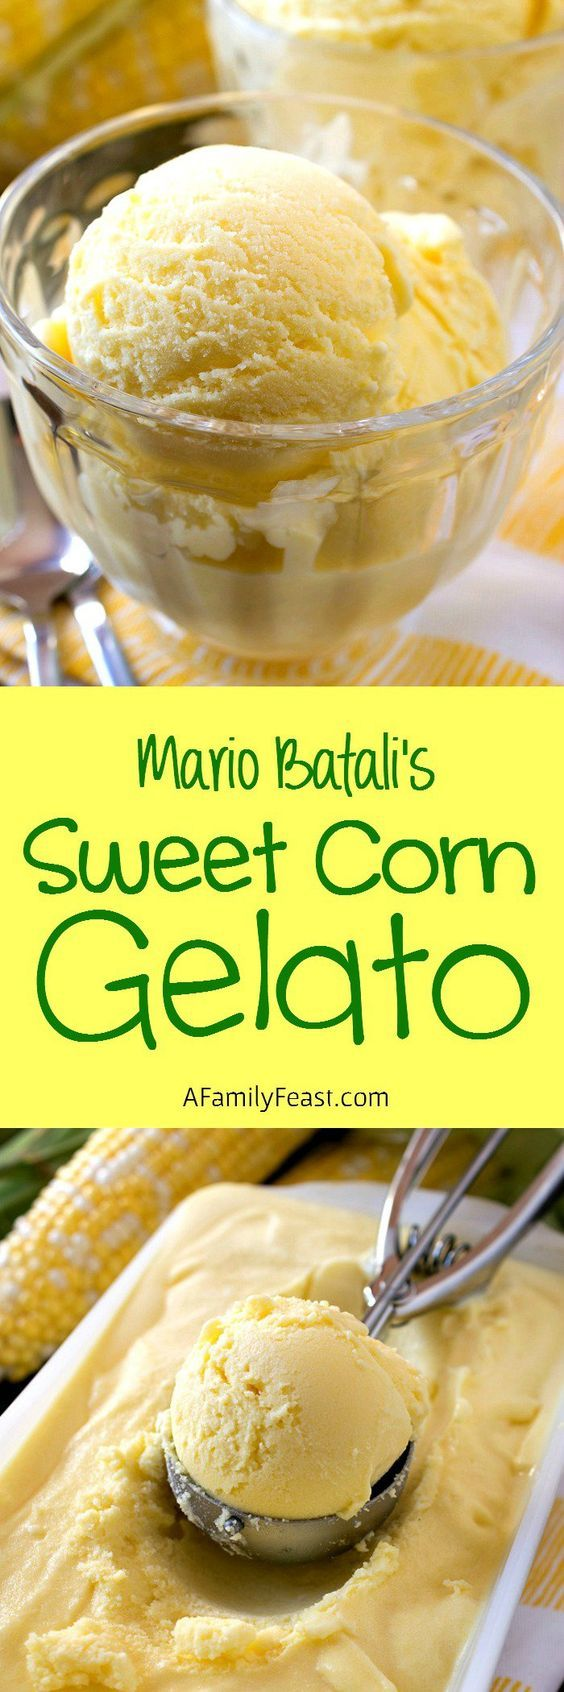 Sweet Corn Gelato ~ adapted from a recipe by Mario Batali, this sweet corn gelato is a delicious taste of summer!